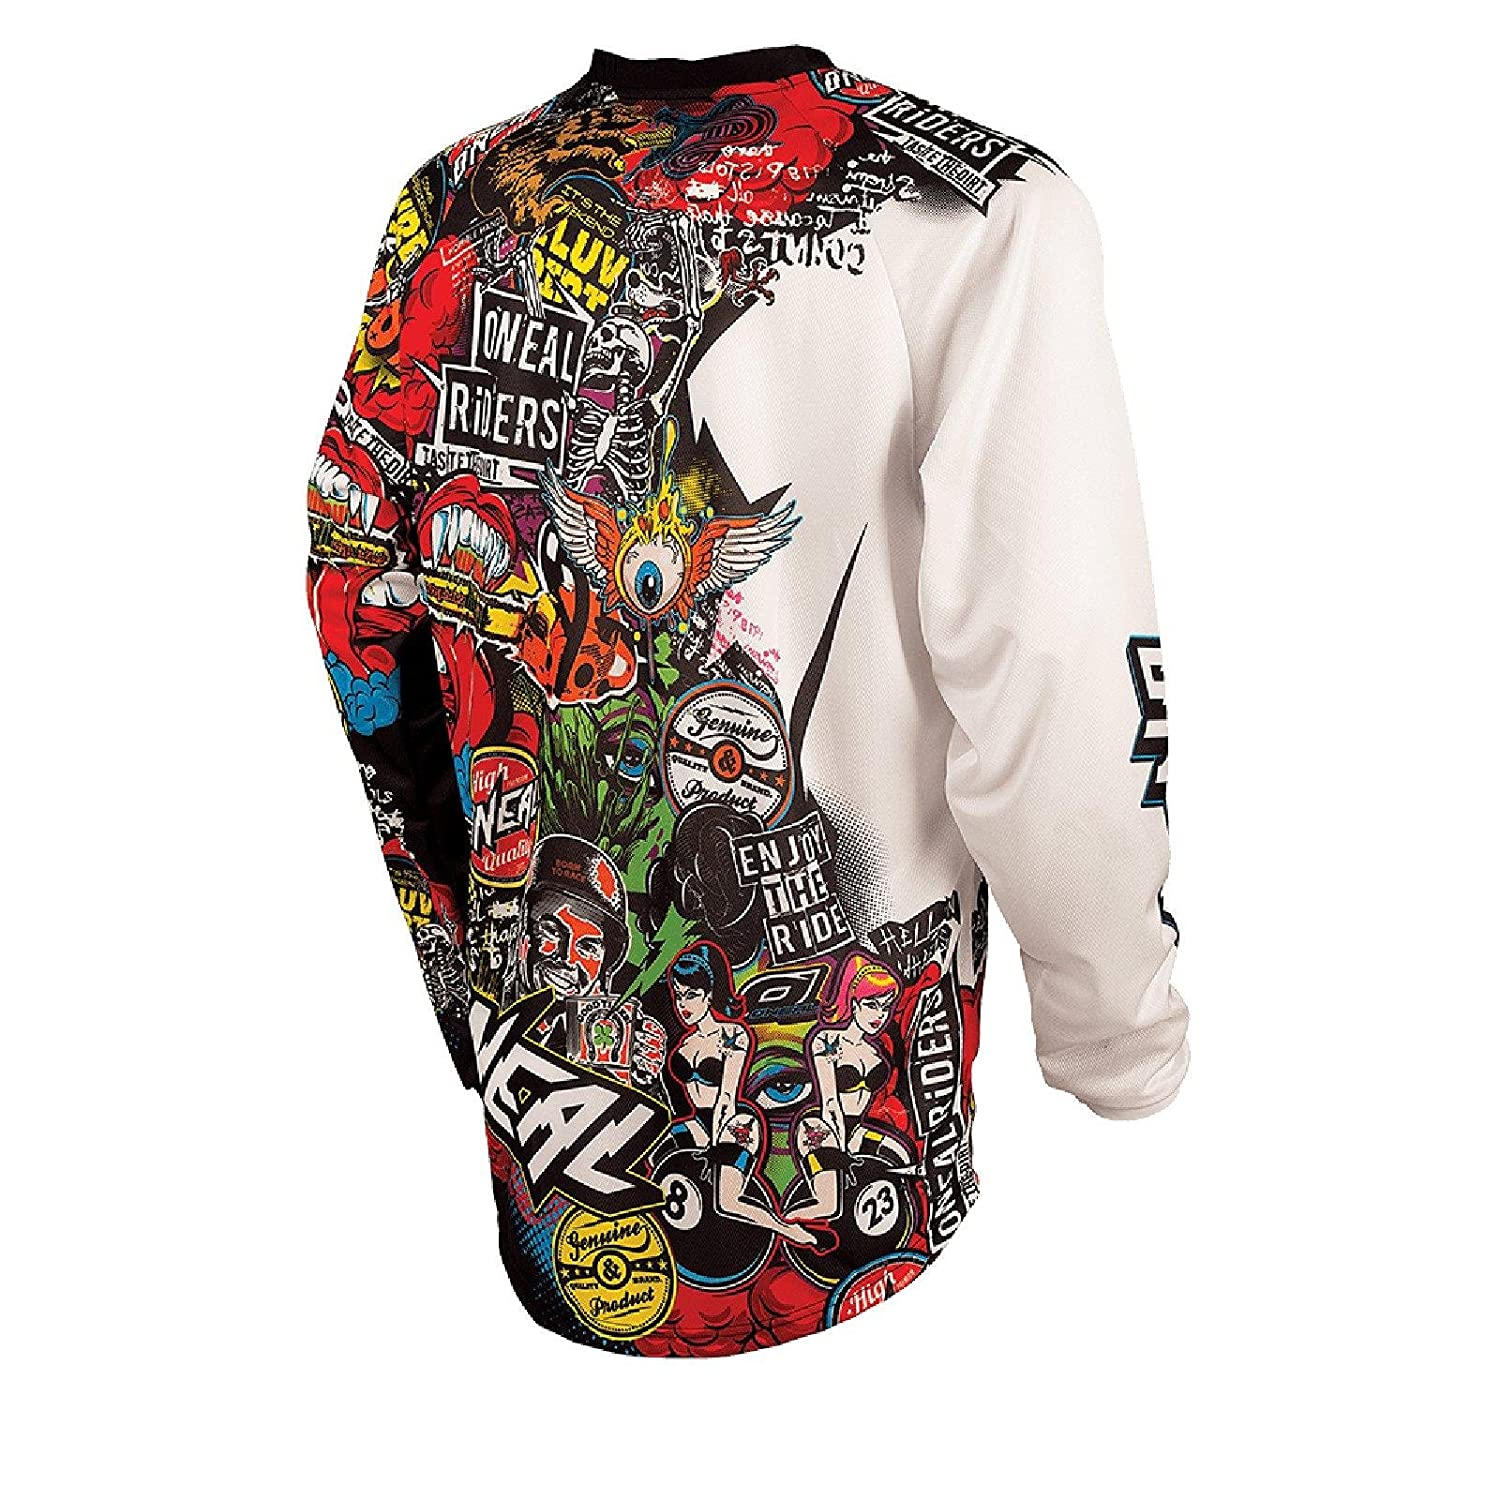 Maillot Manches Longues Homme Oneal Mayhem Lite Multicolore 2019 Tee Shirt Manches Longues Homme